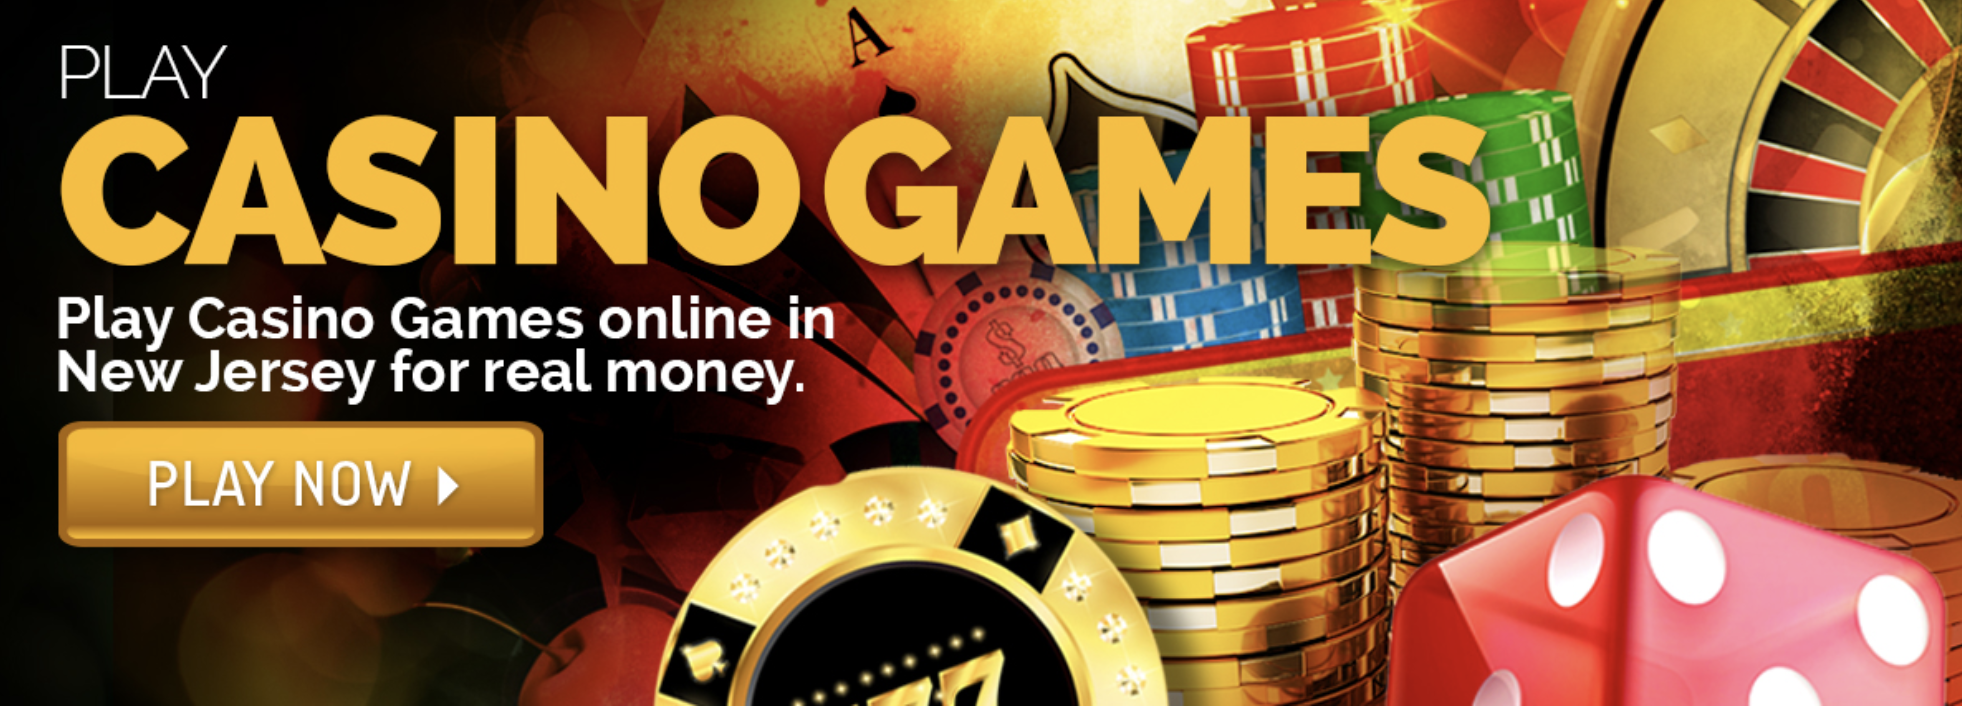 Free Spins Casino UK on New games Win REAL Money on Online Casinos 2019 - Online slots sites